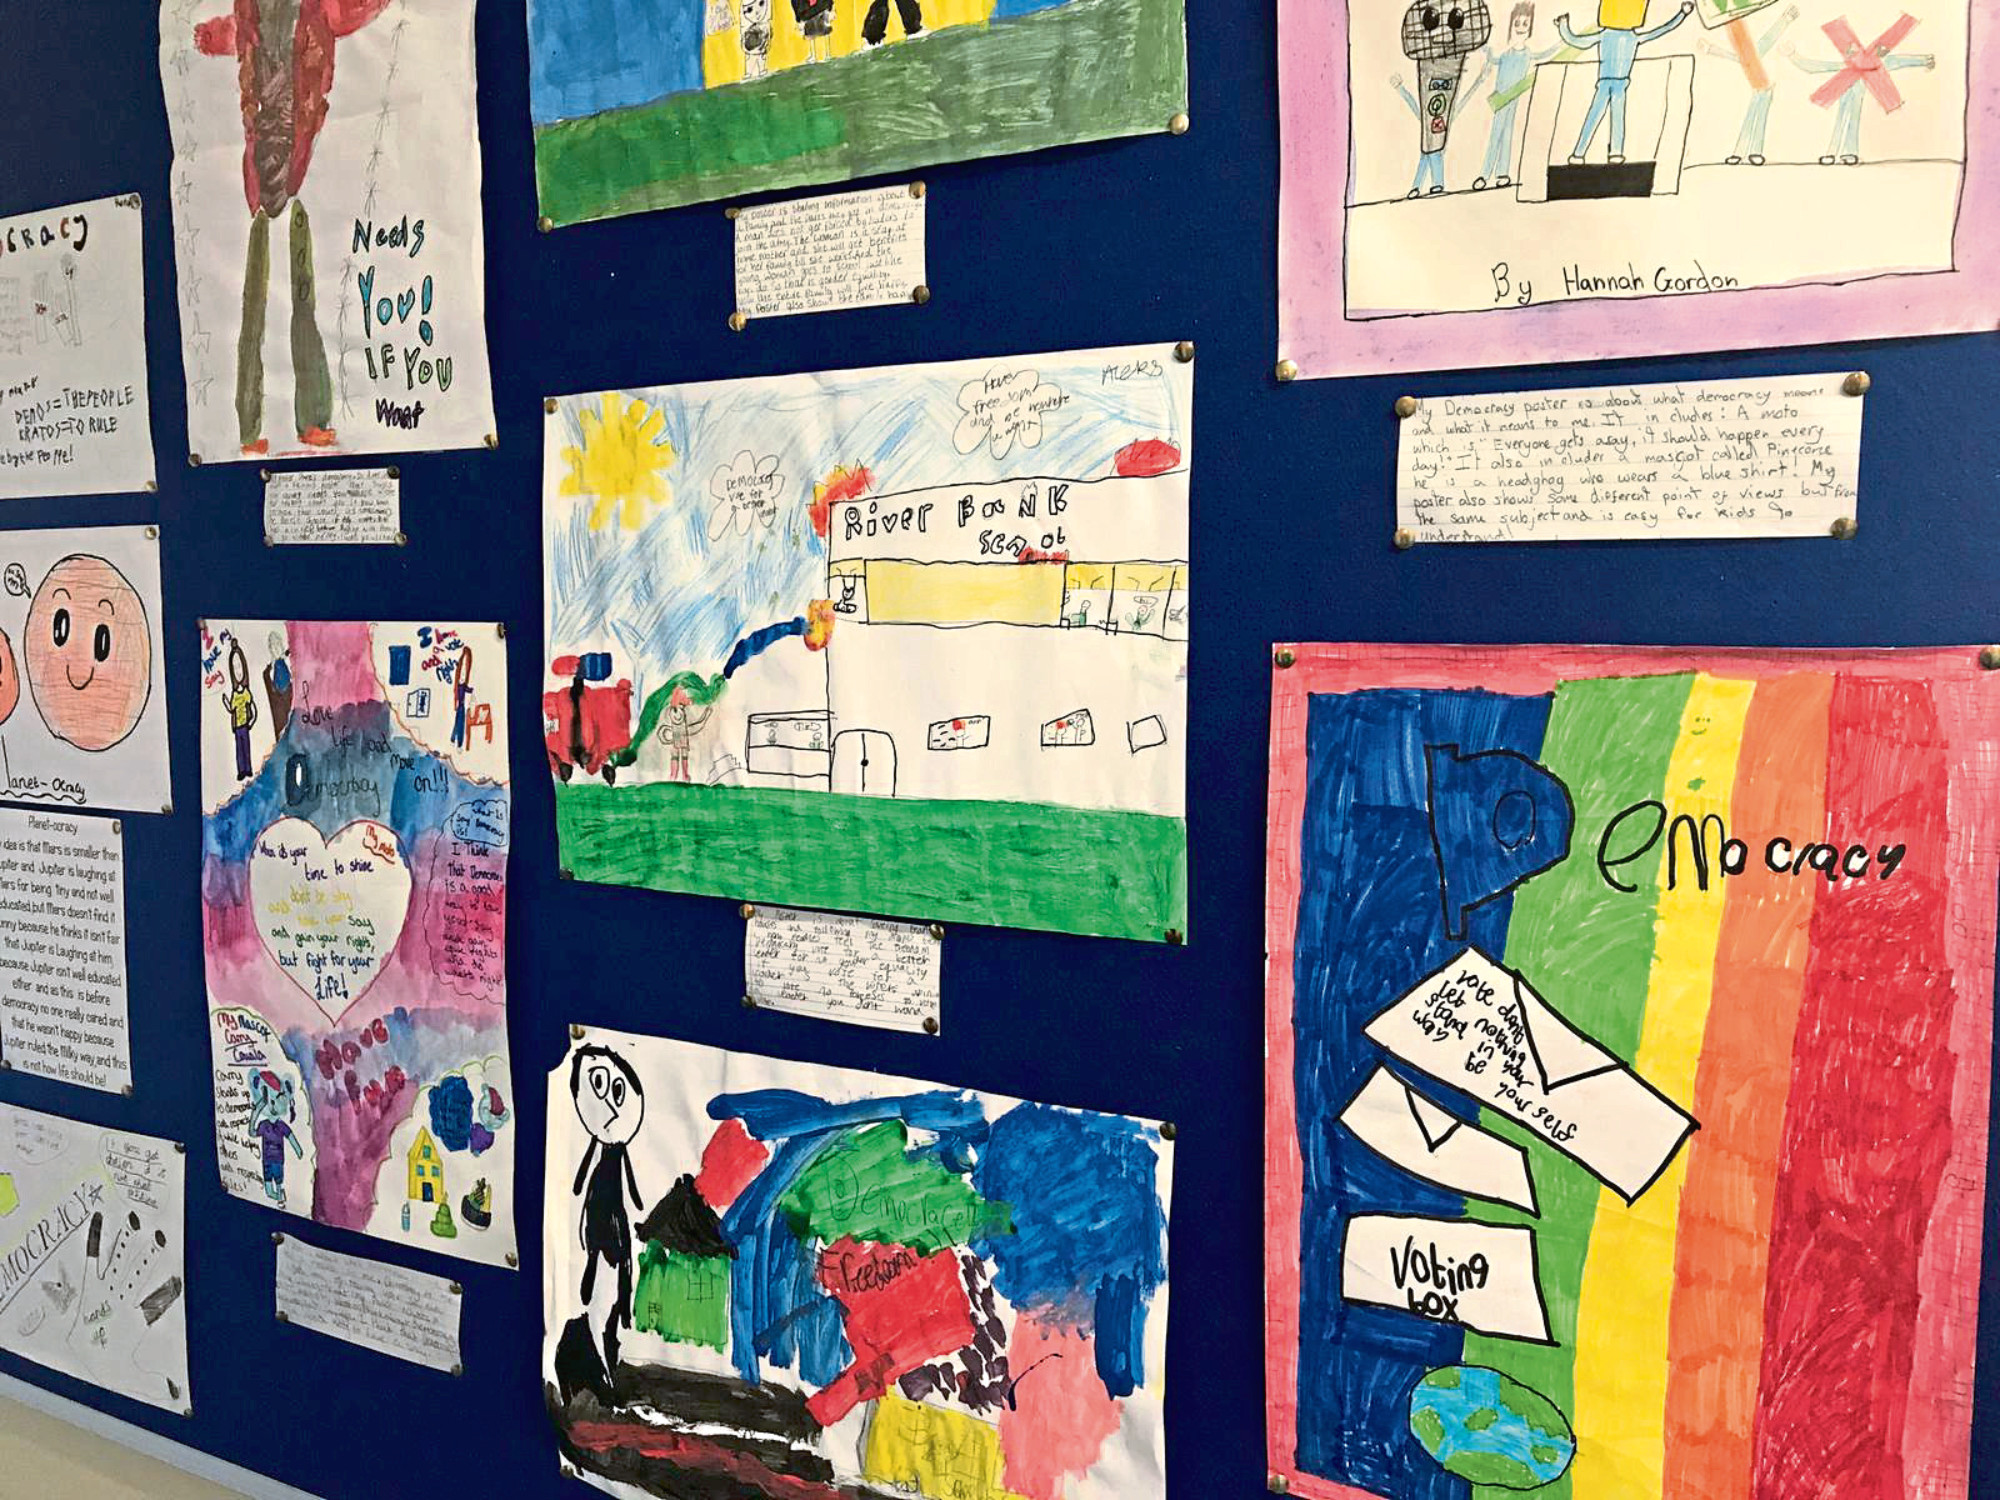 Some of the entries in the poster art competition